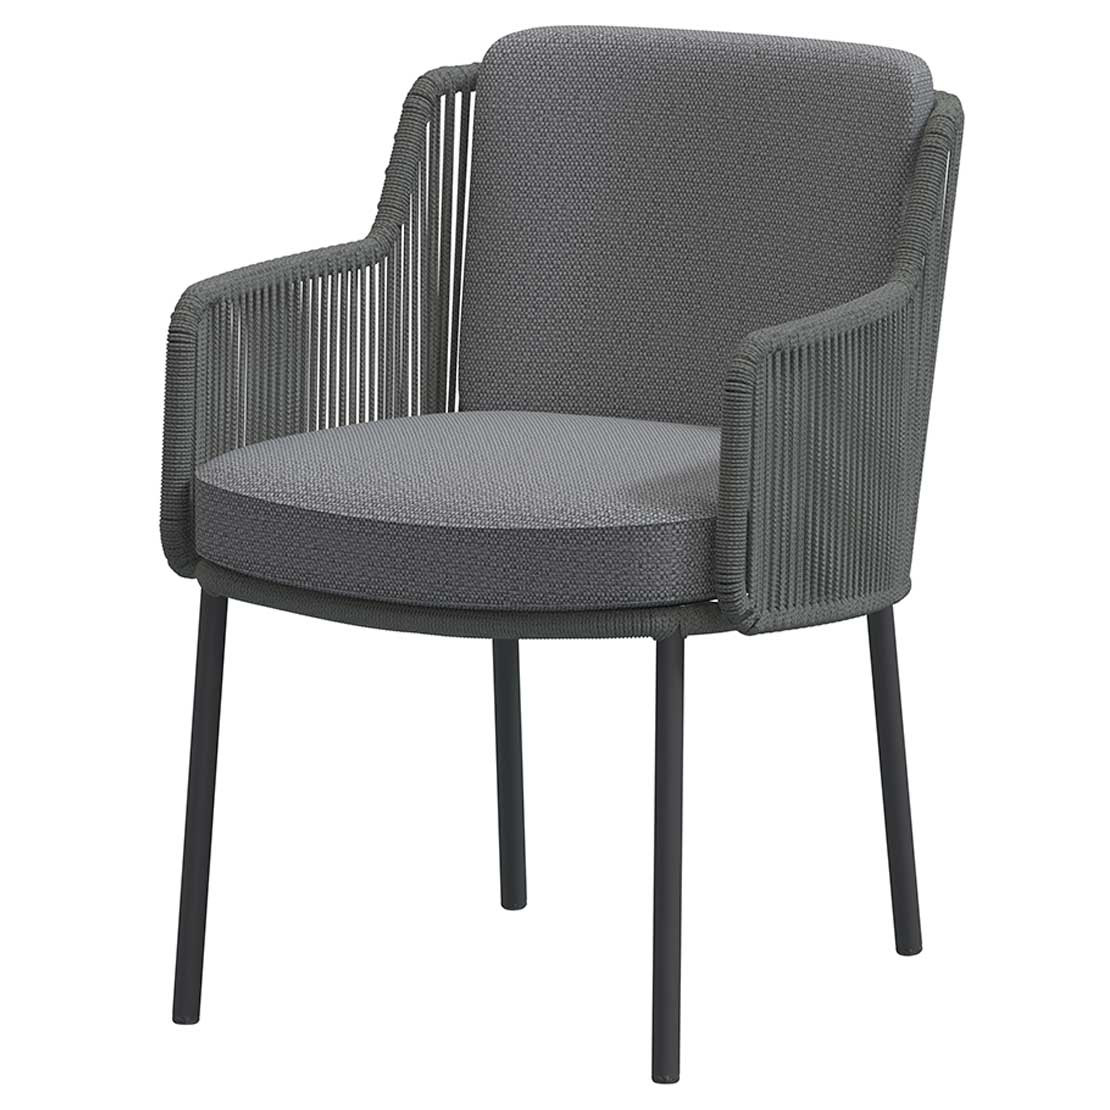 Bernini dining chair Platinum with 2 cushions